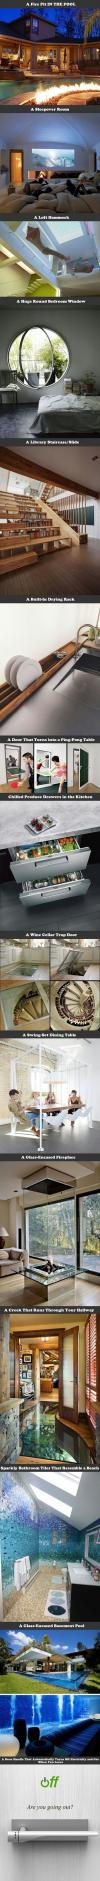 architecture, cool, house, compilation, win, like a boss